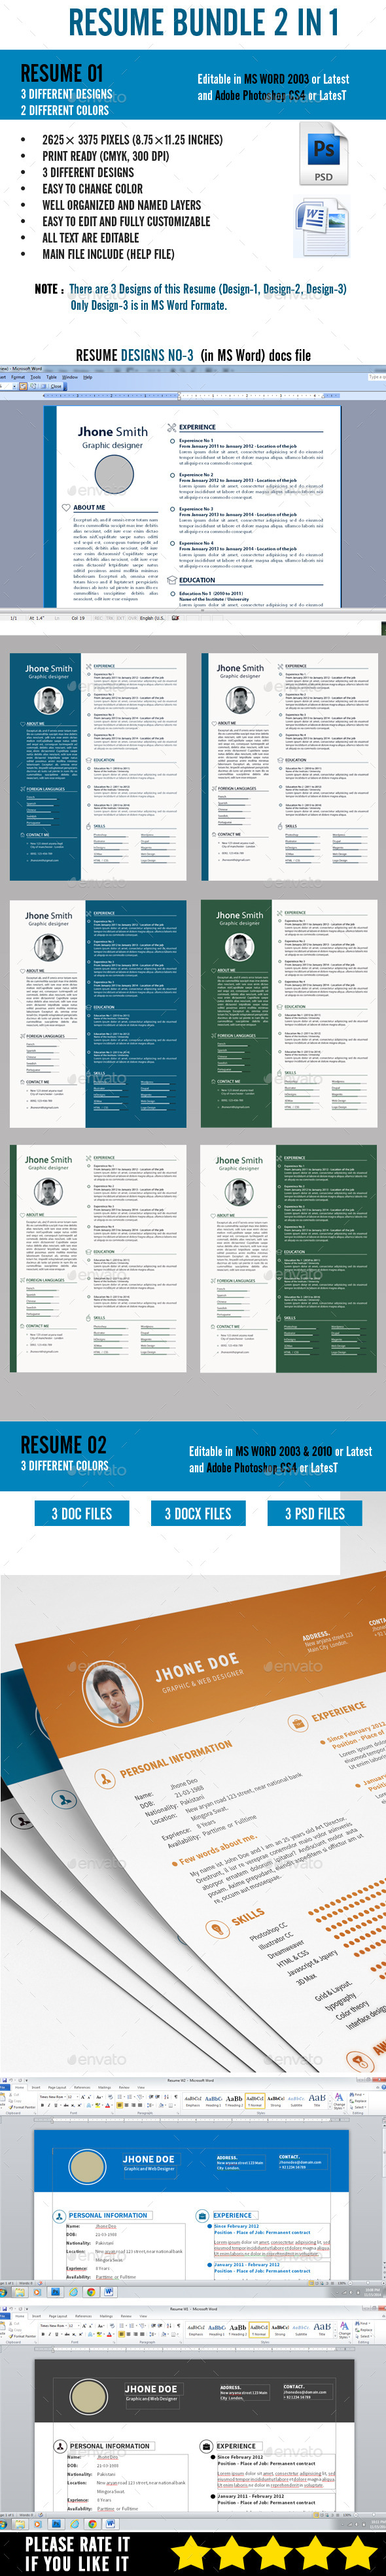 Resume Bundle 2 in 1